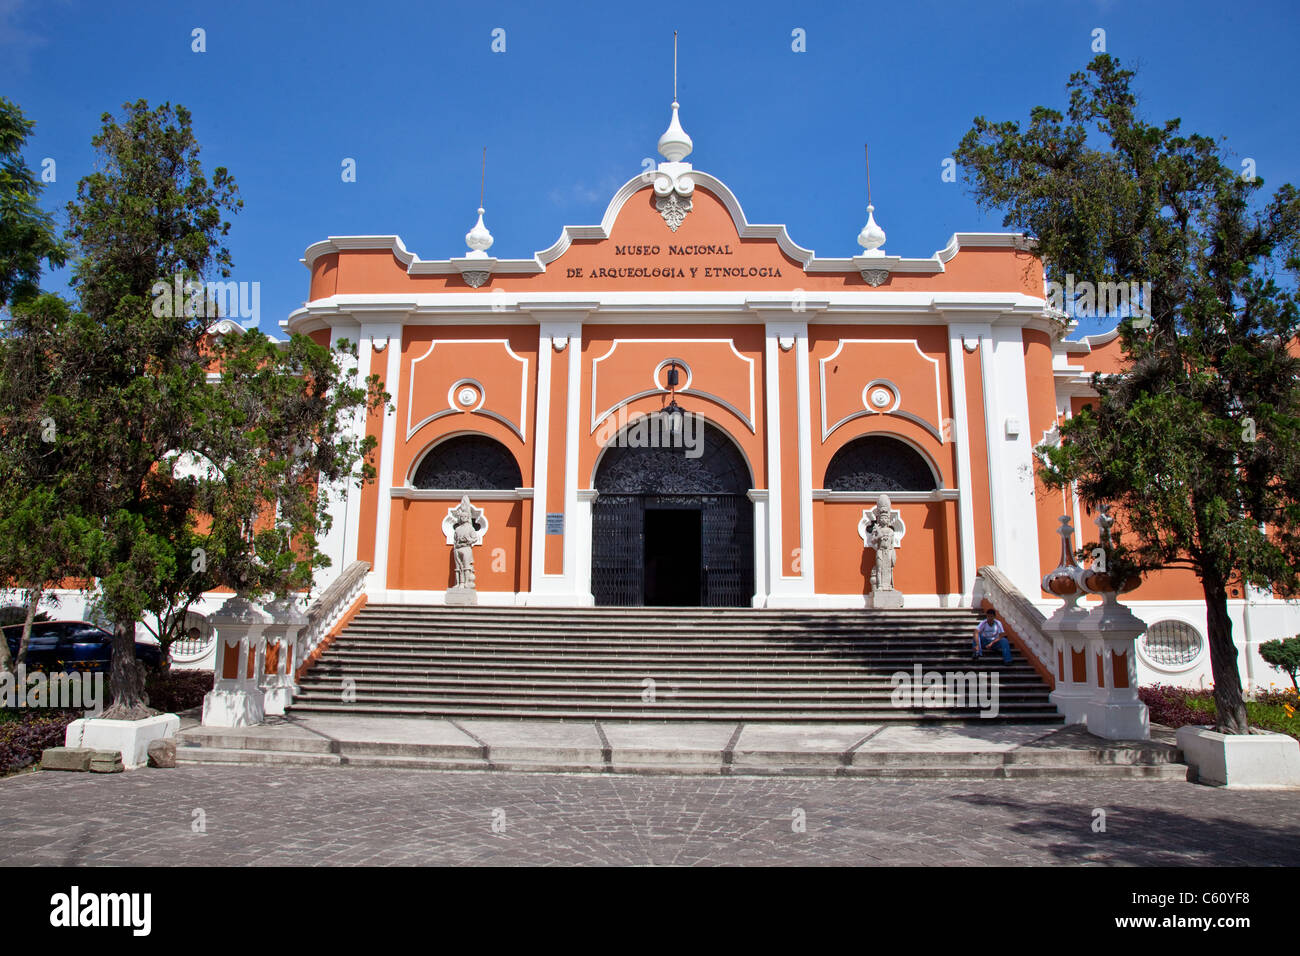 National Museum of Archeology and Ethnology, Guatemala City, Guatemala - Stock Image